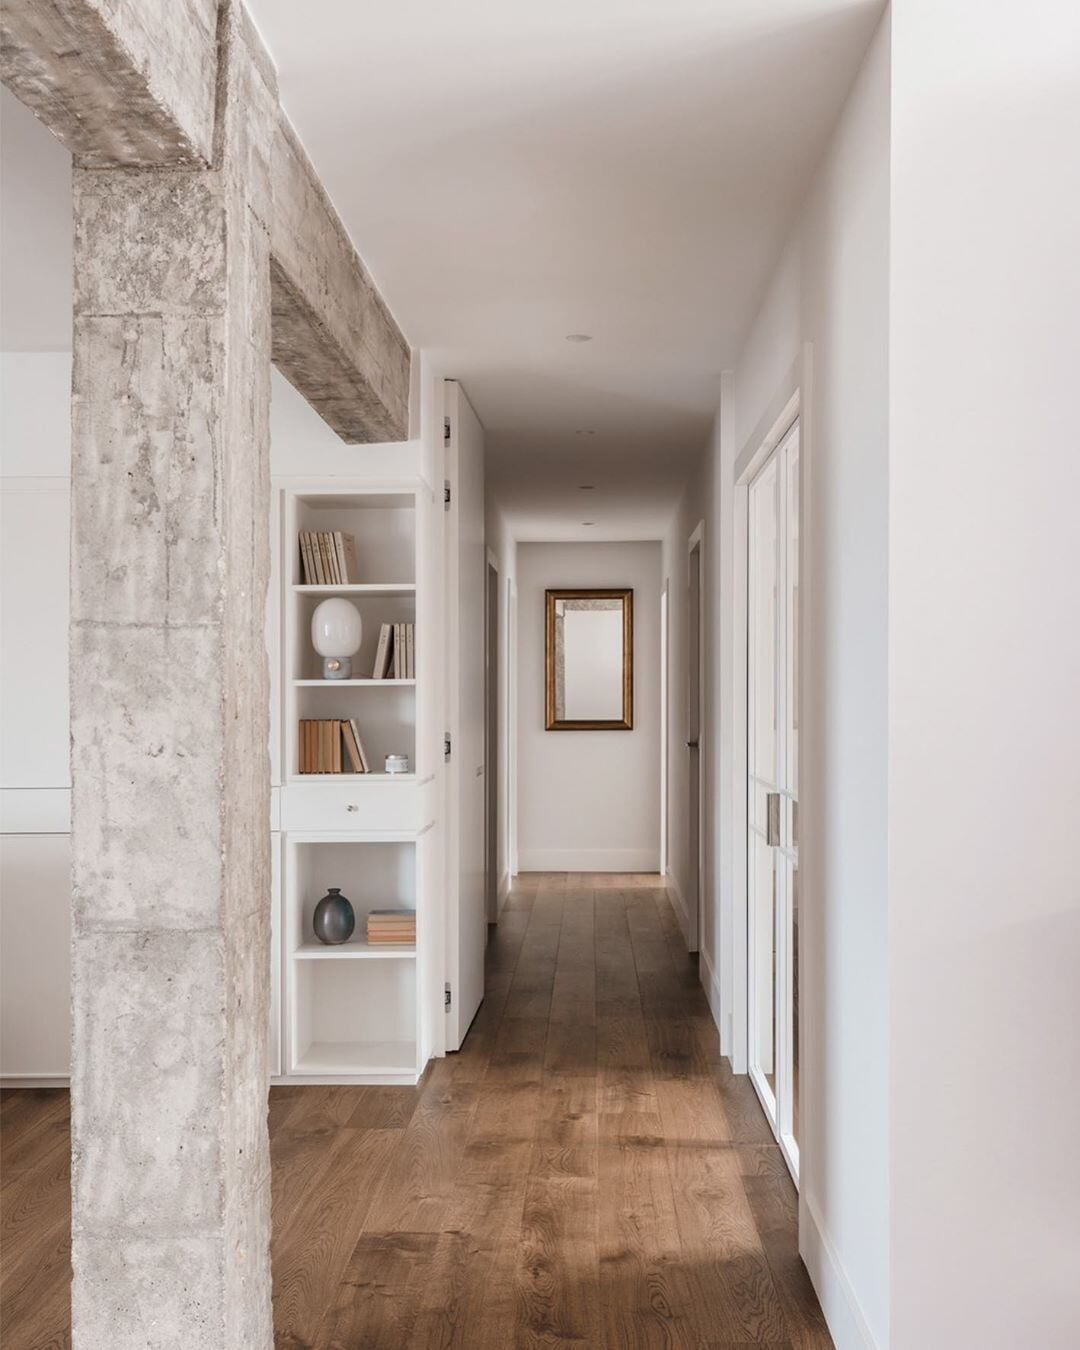 Bridgeport, CT home hallway with exposed concrete beams and wood flooring